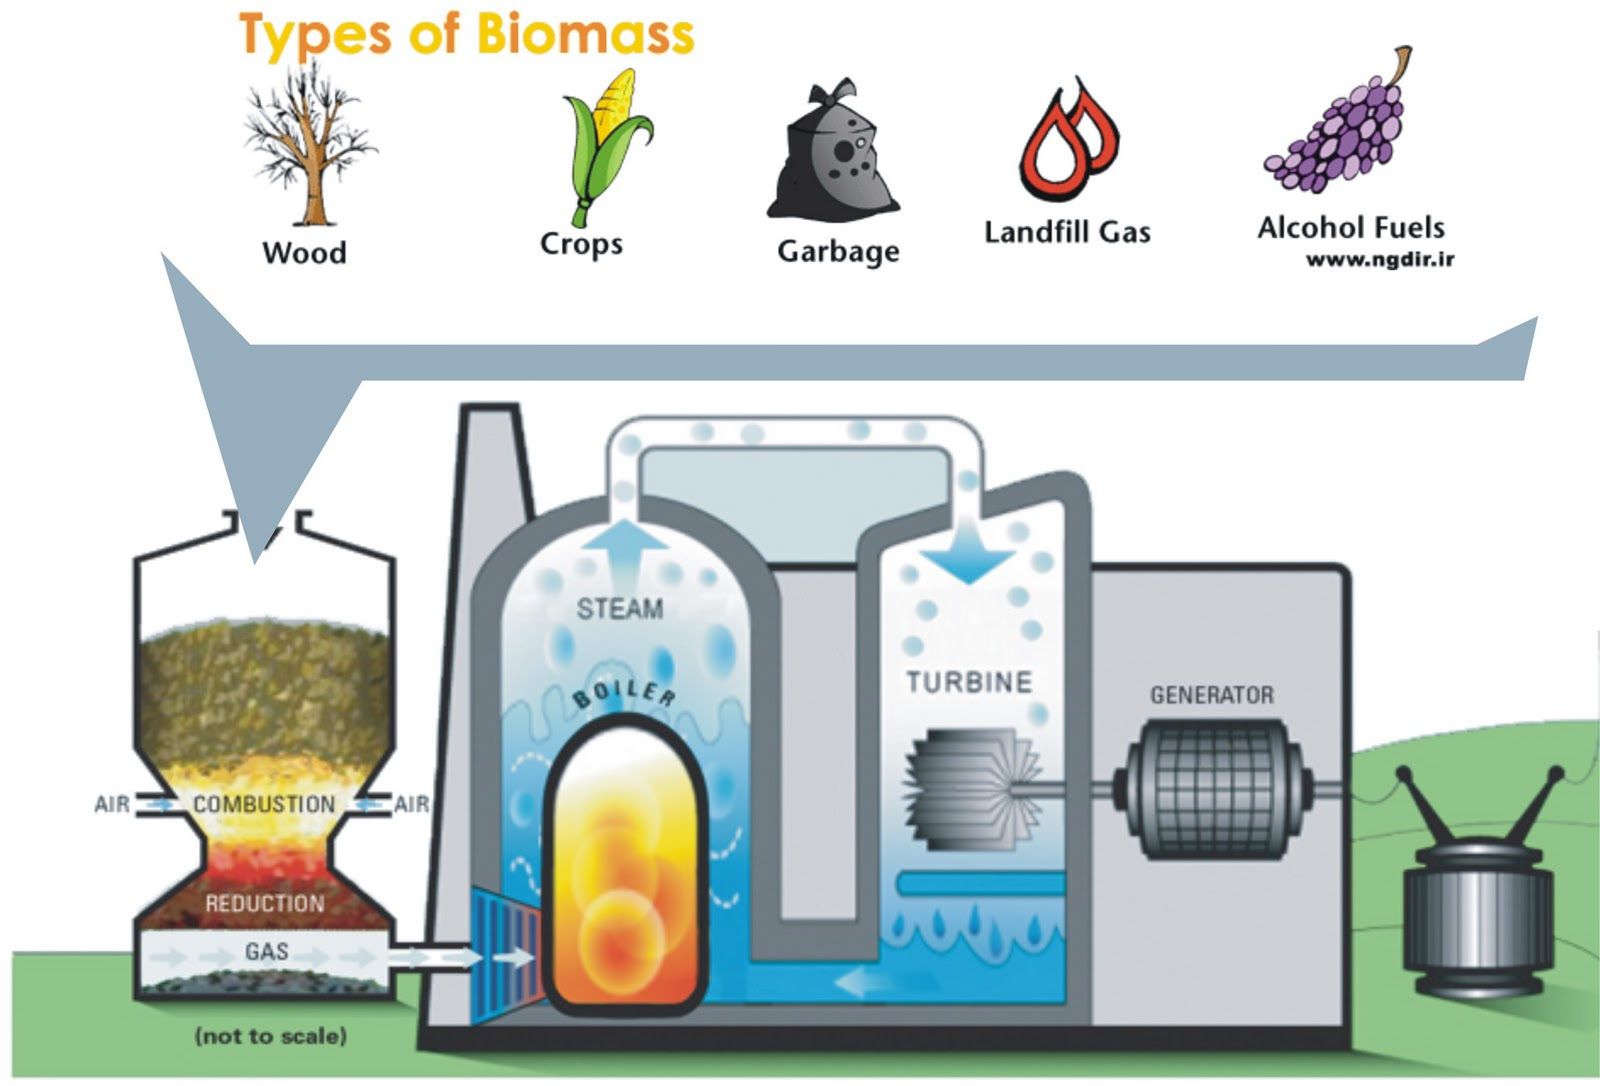 biomass energy plant diagram - photo #2